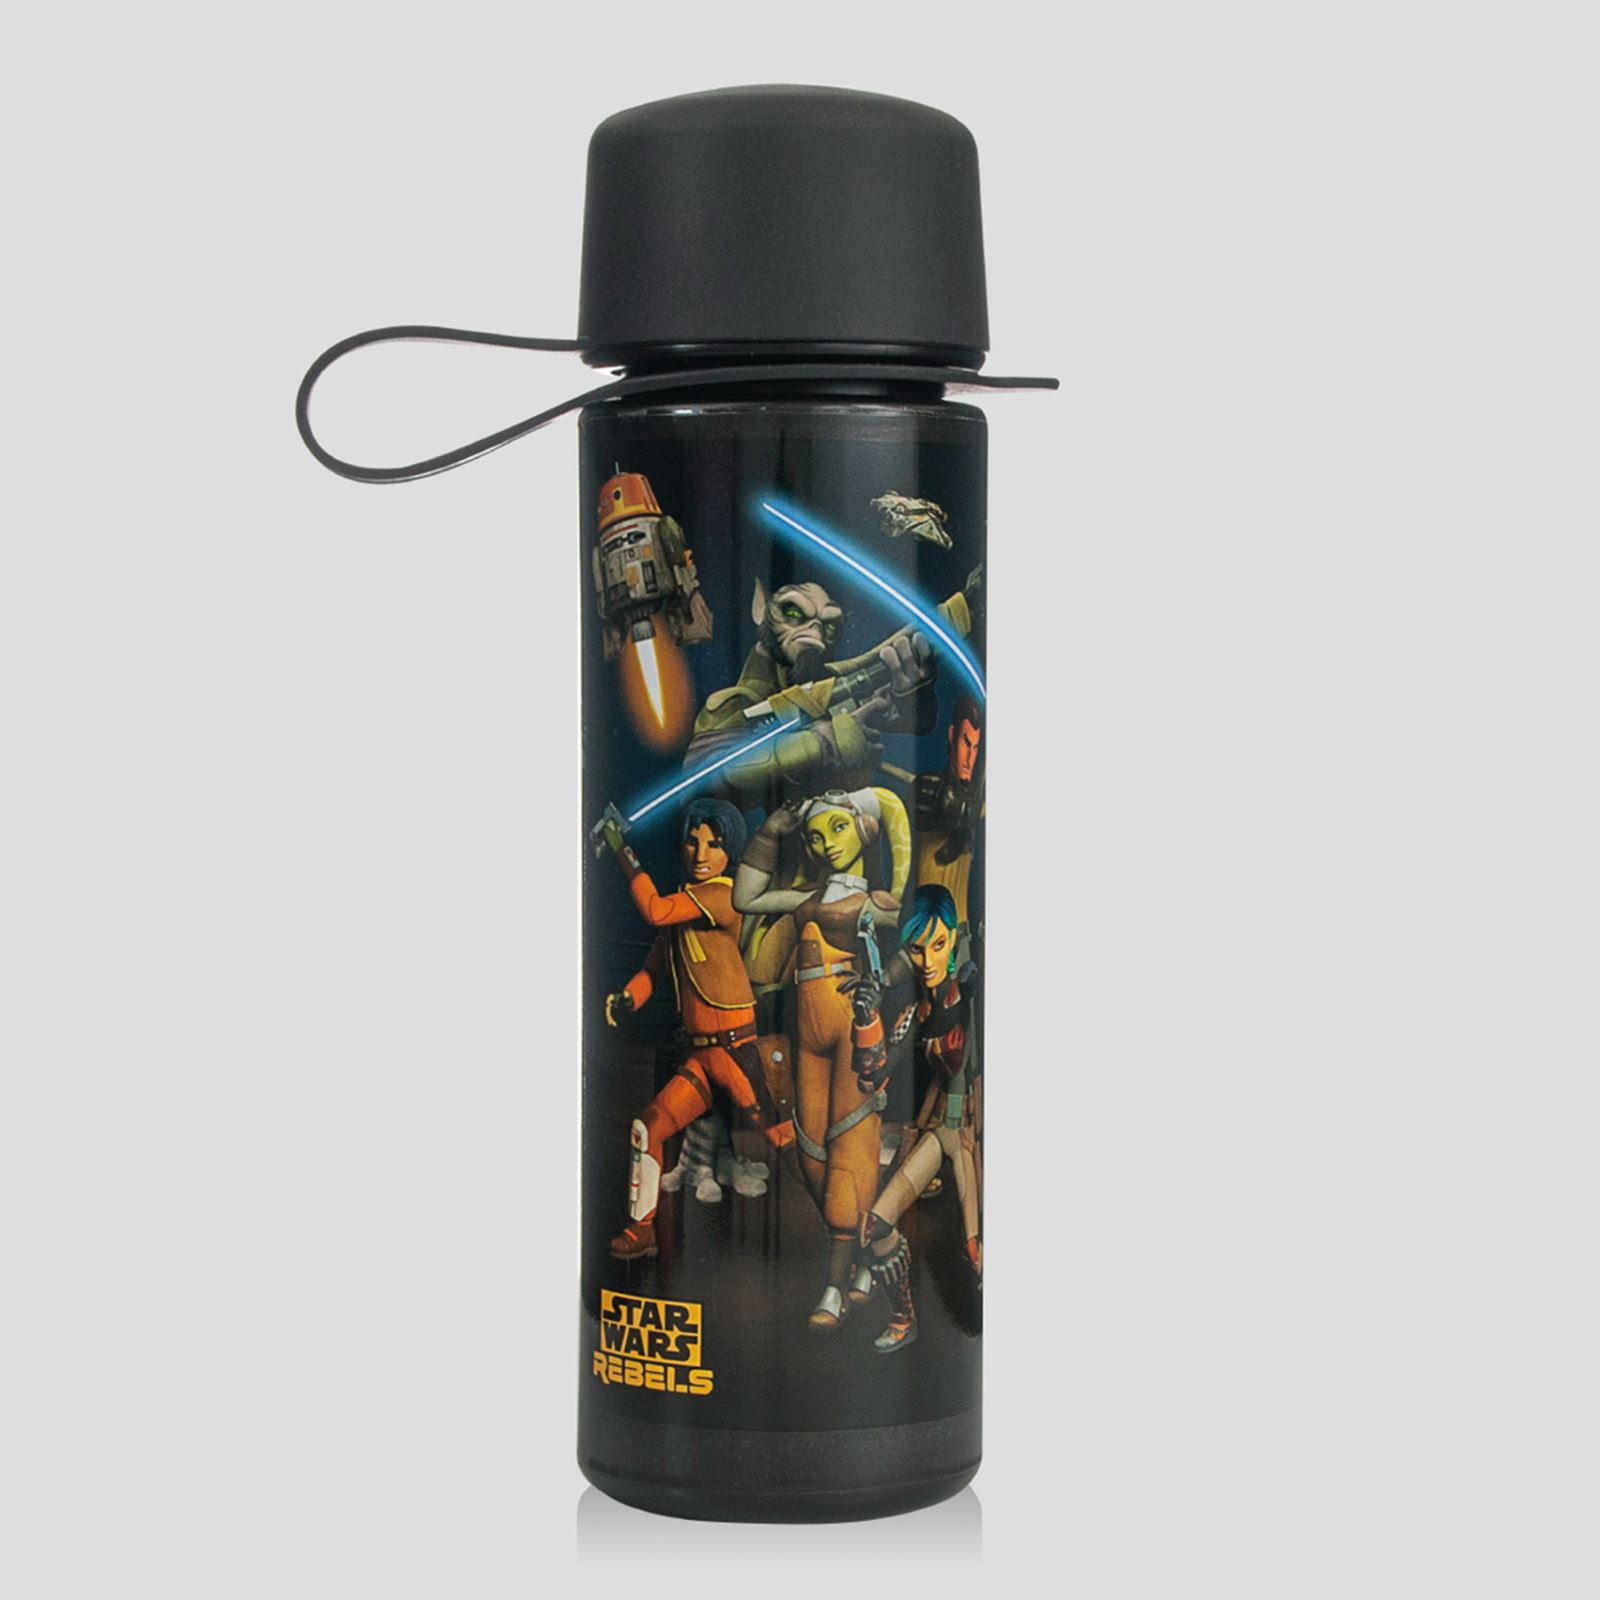 star wars rebels kinder mittagessen kiste und trinkflasche. Black Bedroom Furniture Sets. Home Design Ideas